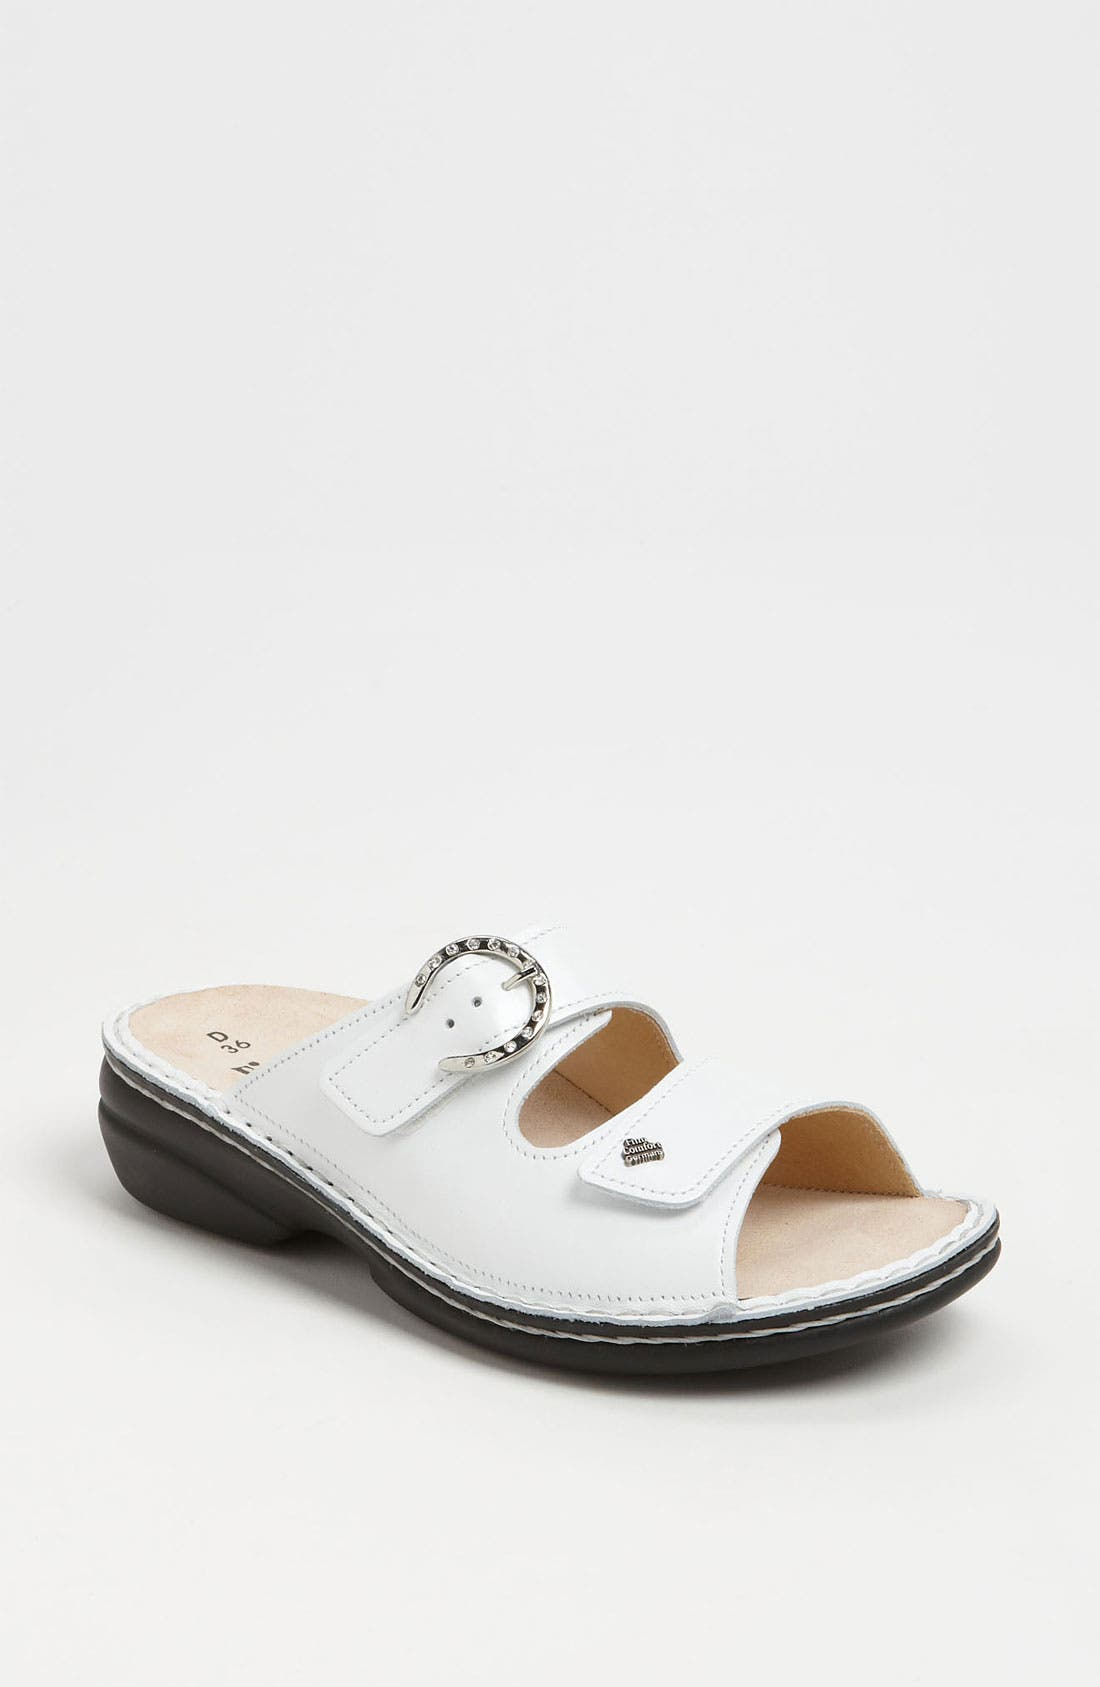 Alternate Image 1 Selected - Finn Comfort 'Mumbai' Sandal